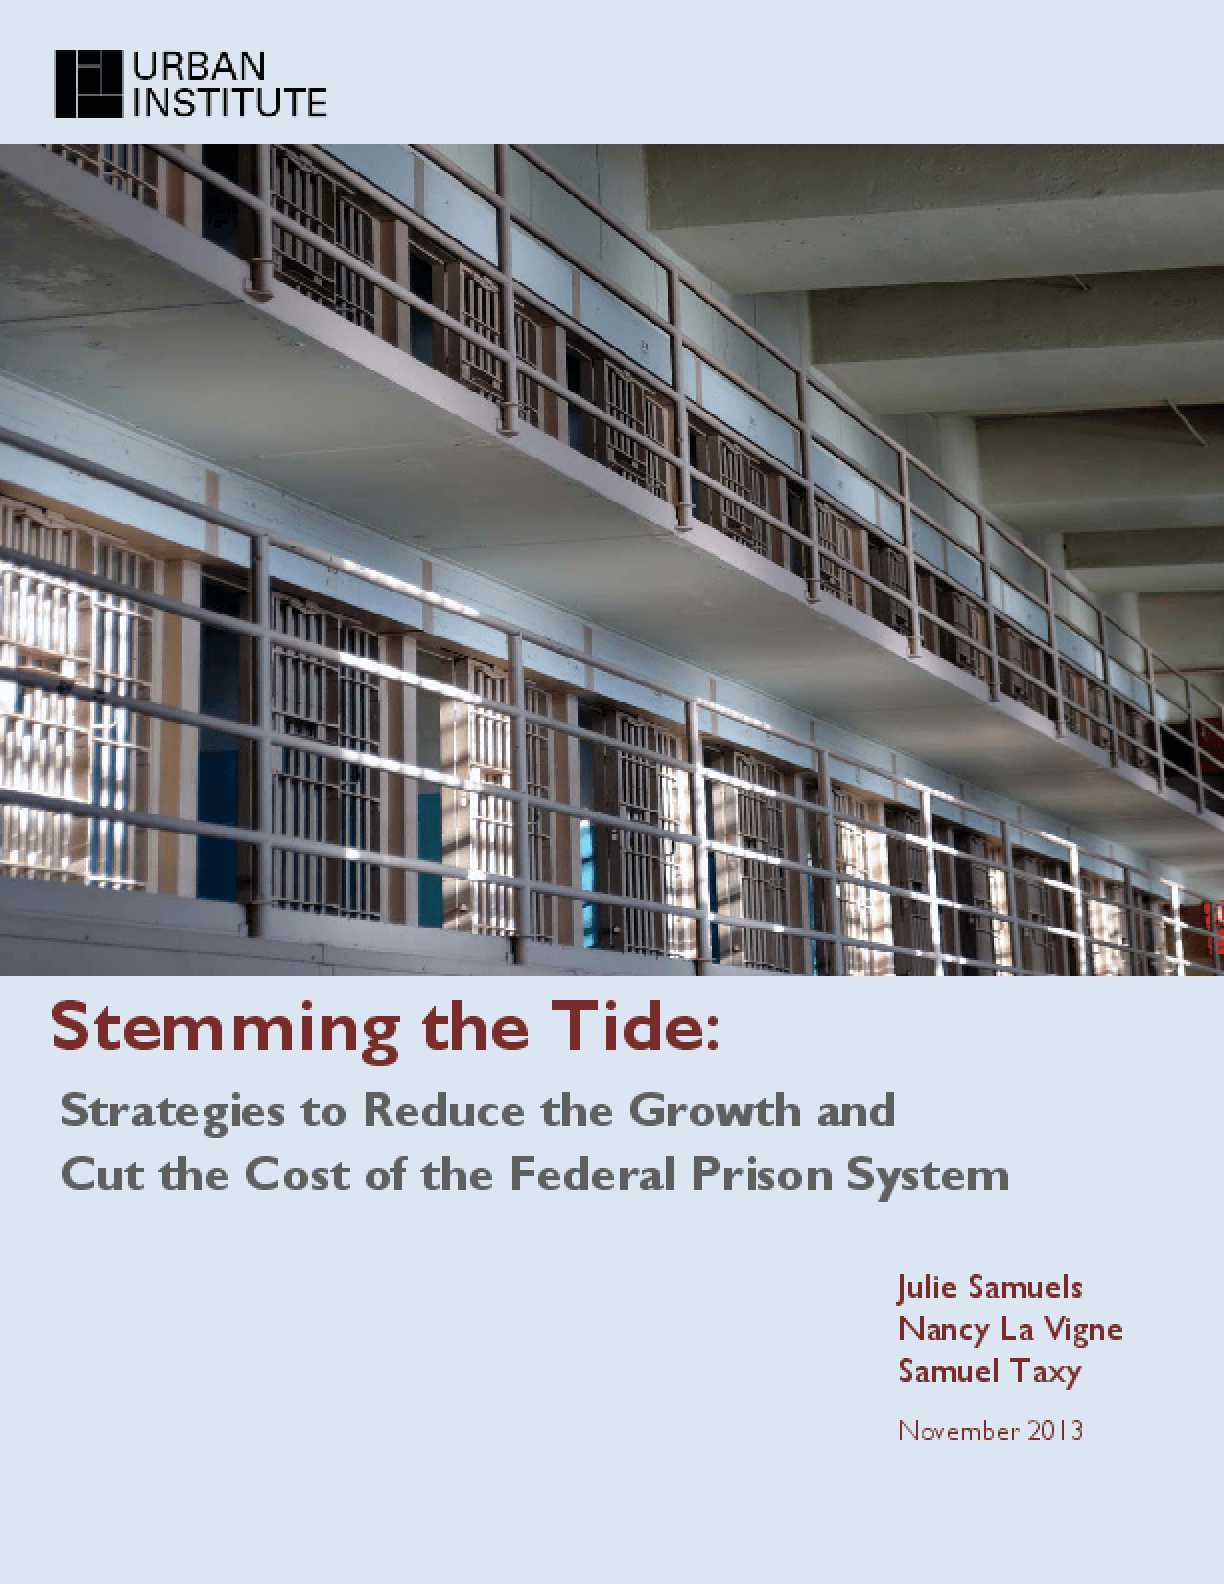 Stemming the Tide: Strategies to Reduce the Growth and Cut the Cost of the Federal Prison System